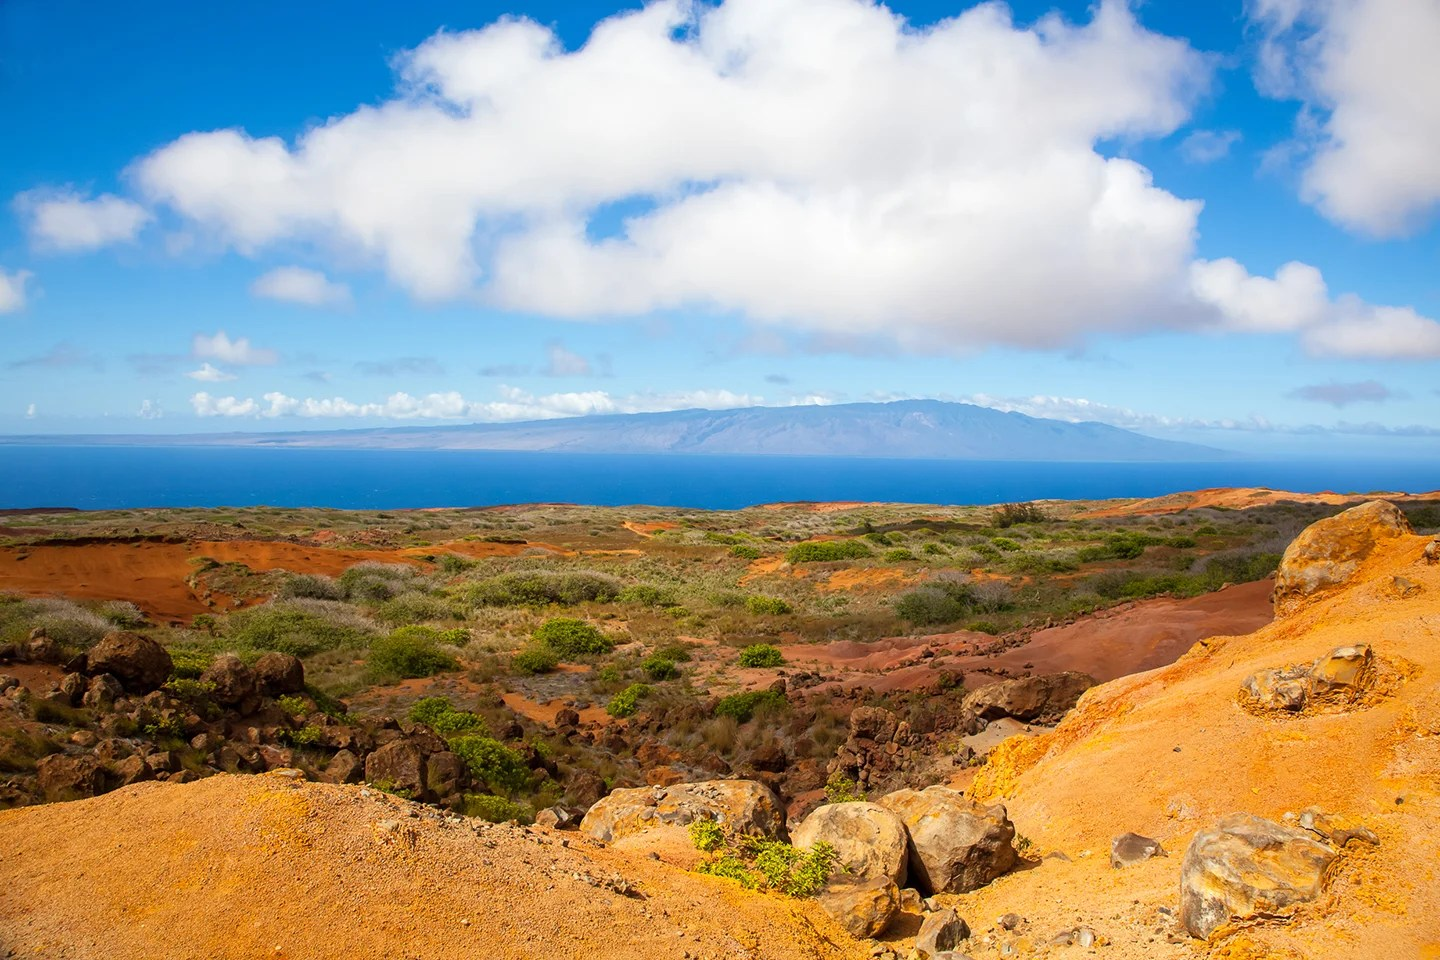 A view across dry land towards the sea on the island of Lanai, Hawaii, with the island of Maui in the distance.